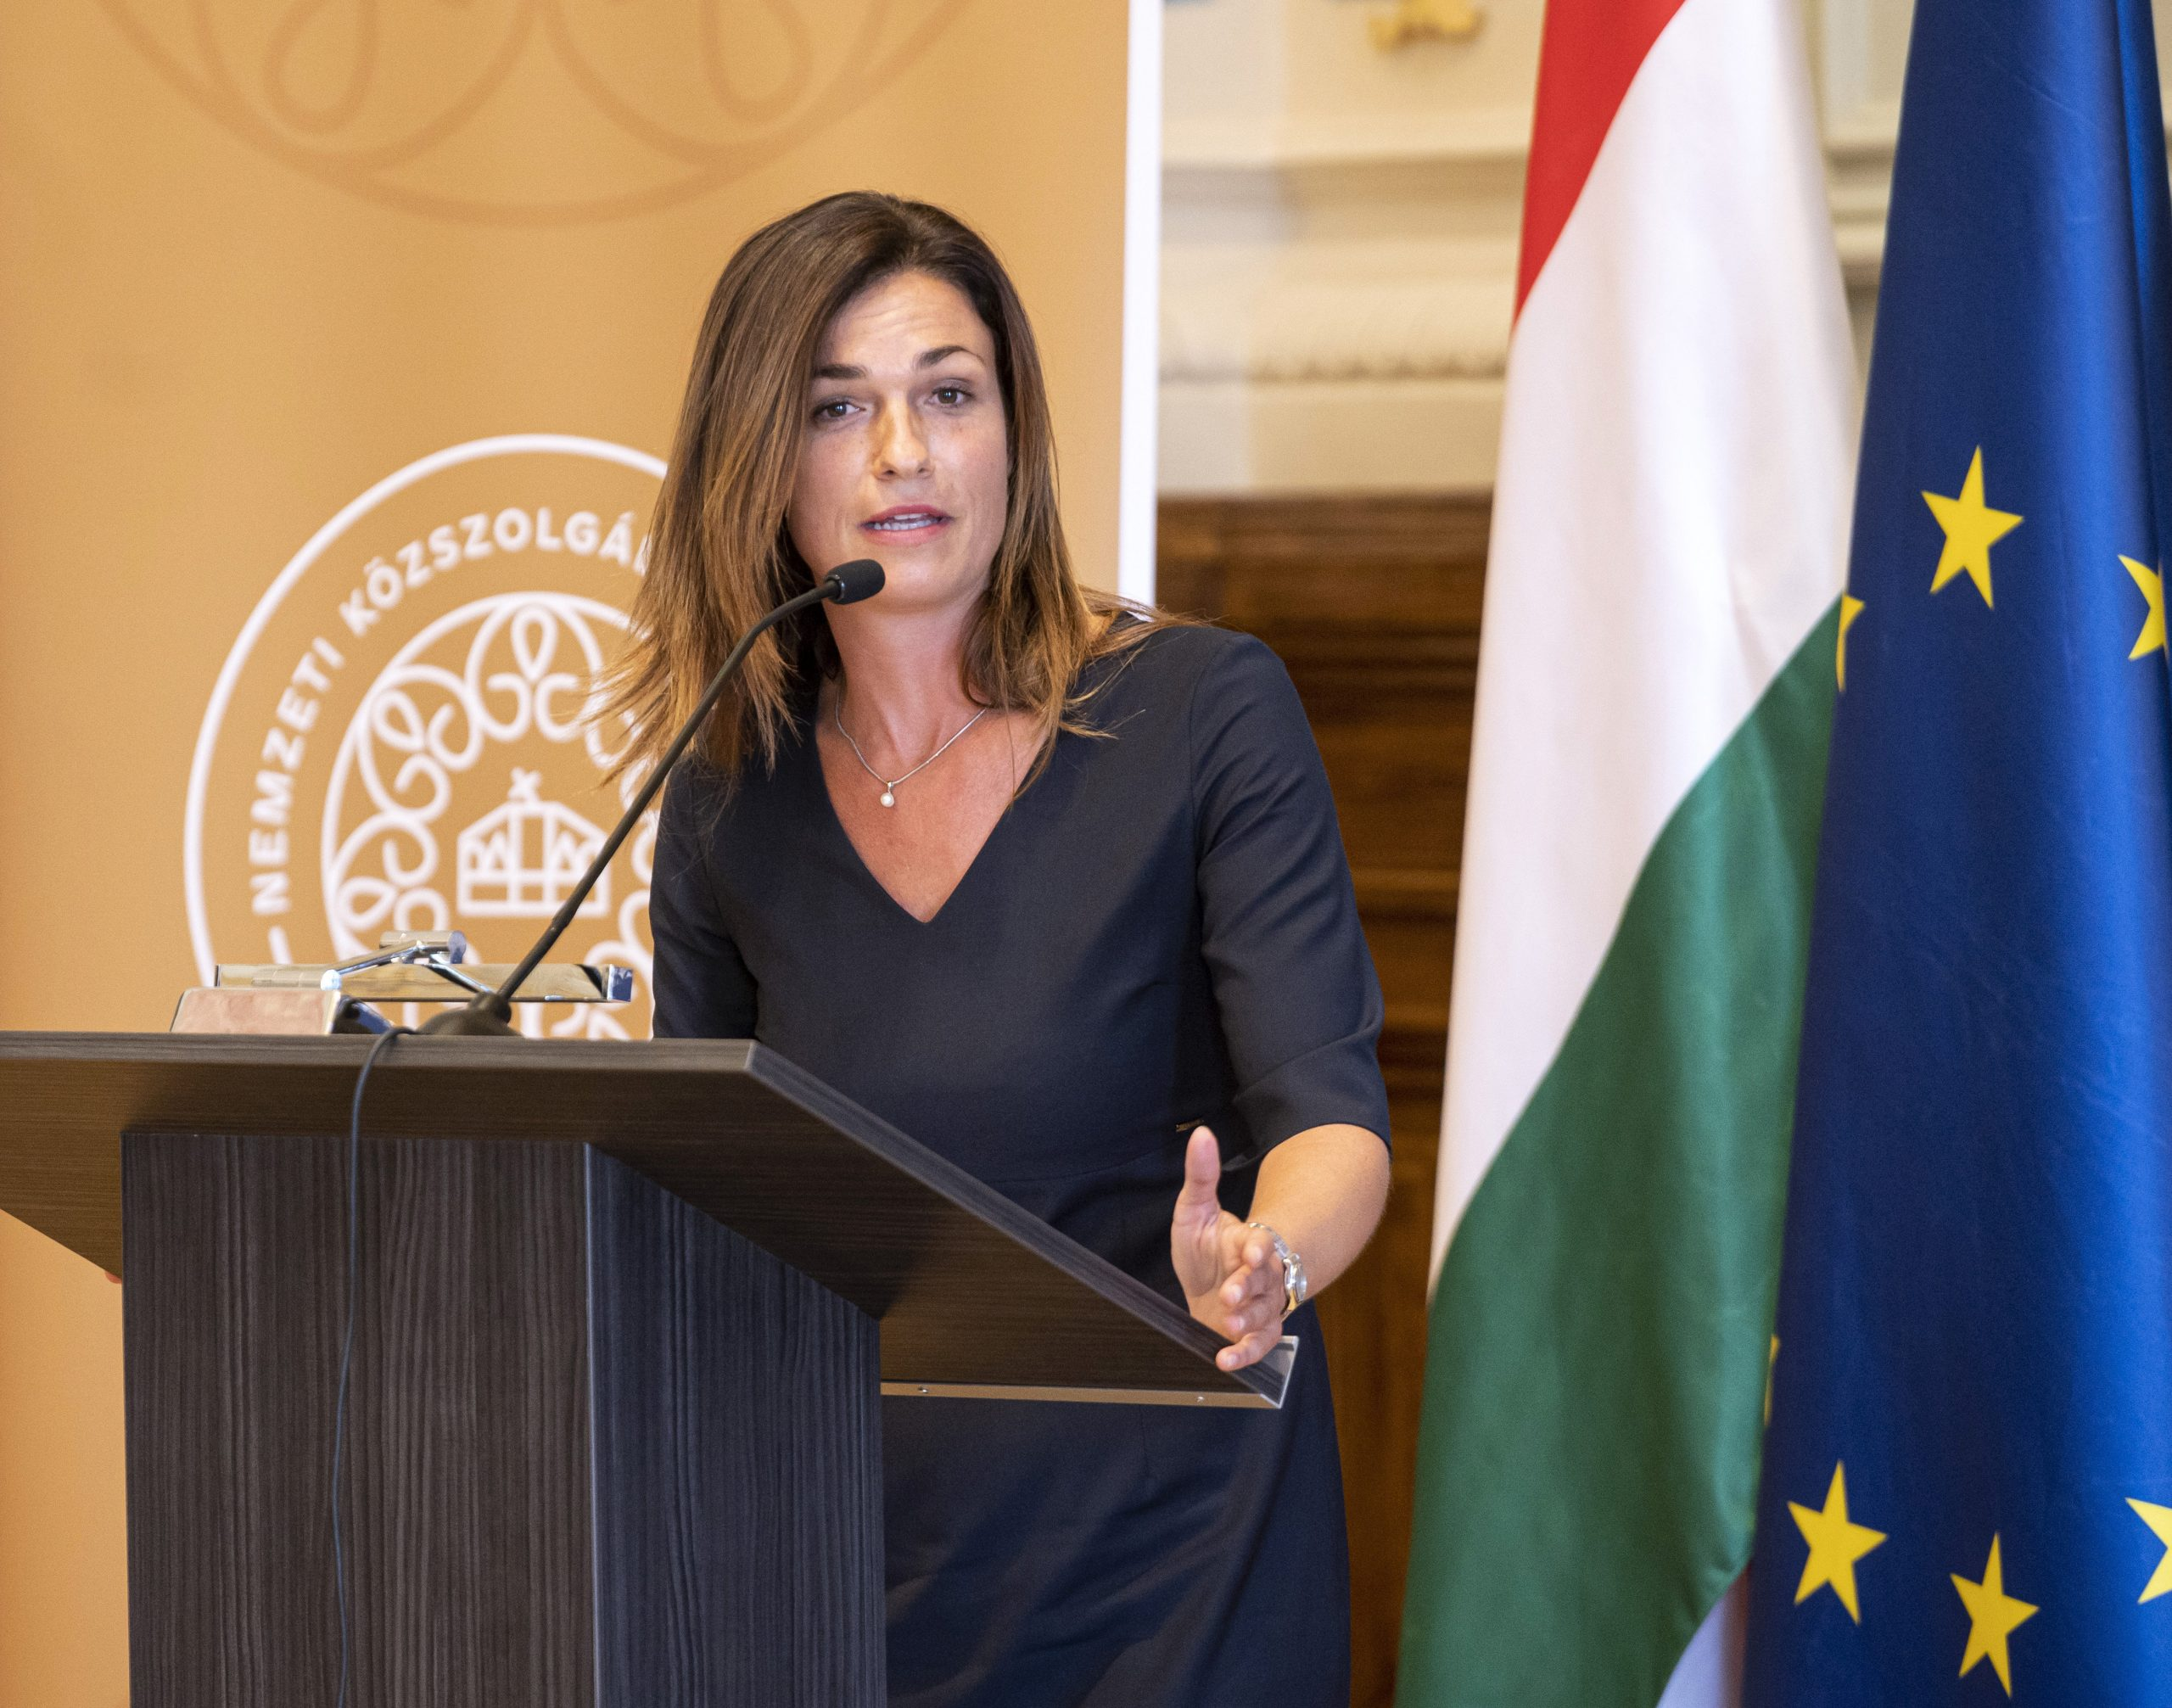 Justice Minister in EUObserver: EC Rule of Law Report Wrong in Many Ways